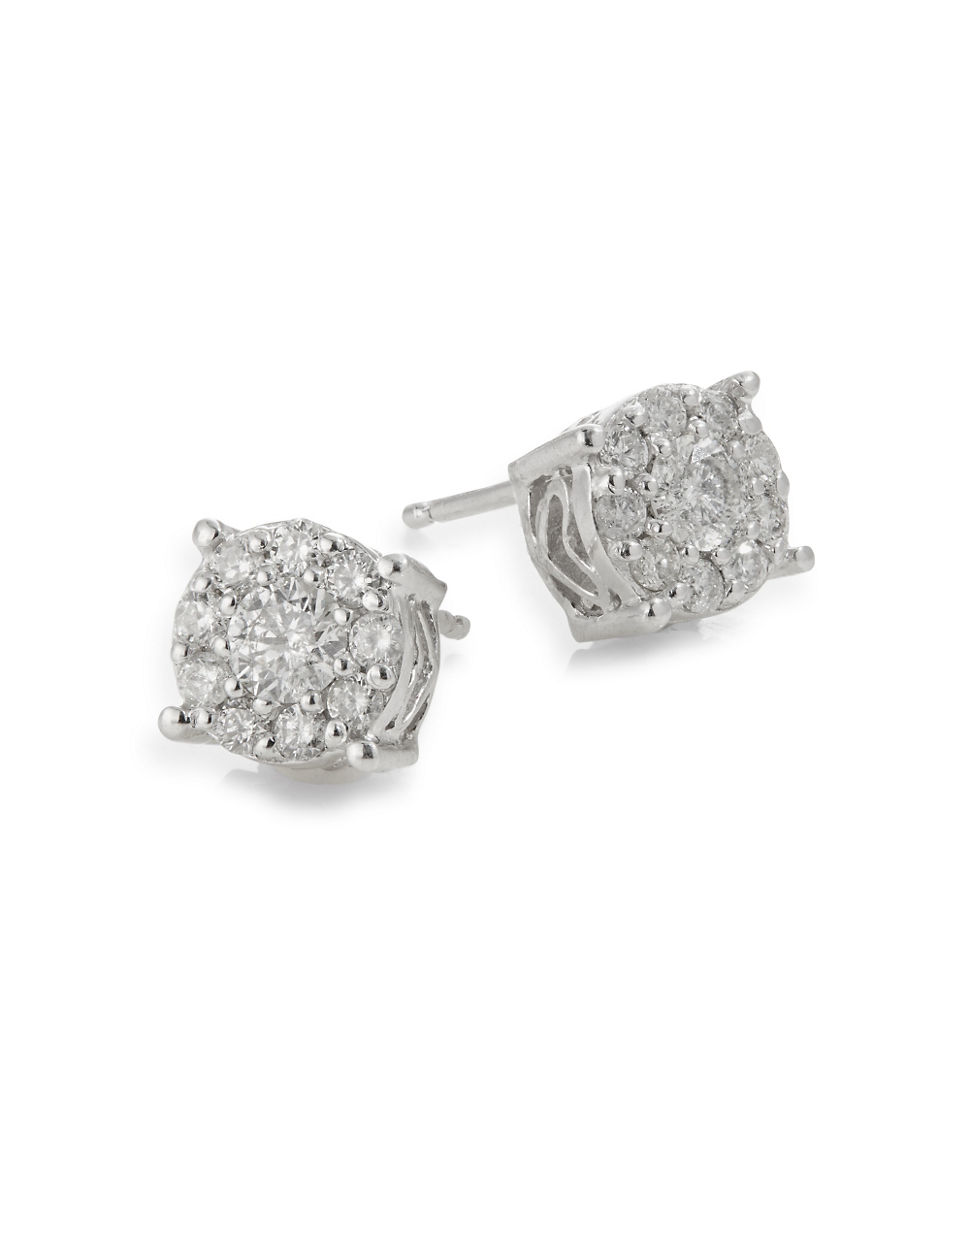 14K White Gold Diamond Stud Earrings Box Set | Hudson\'s Bay